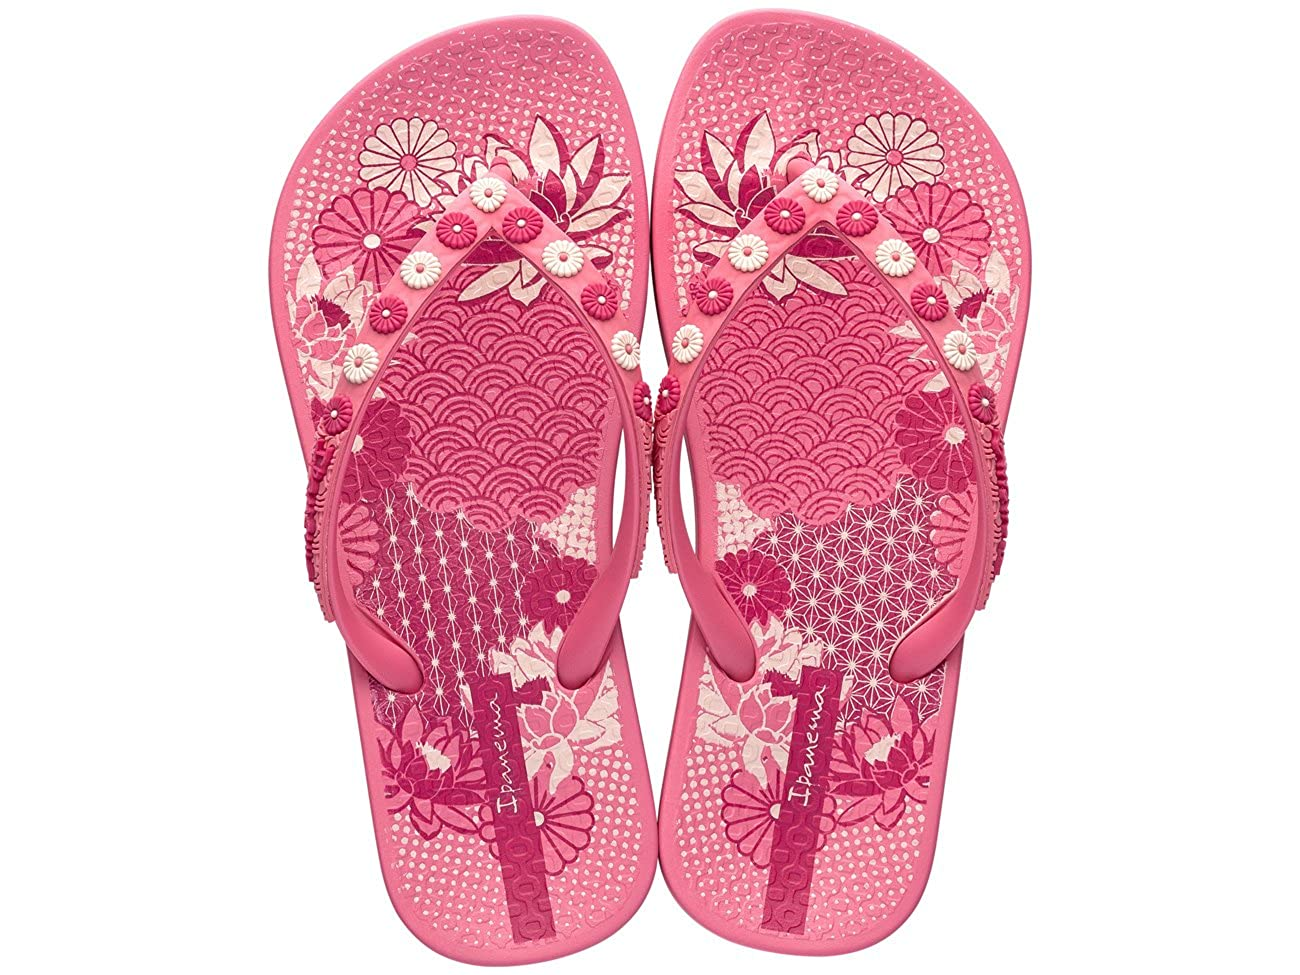 Ipanema Girls Flip Flops Anatomica Lovely Kids Sandals